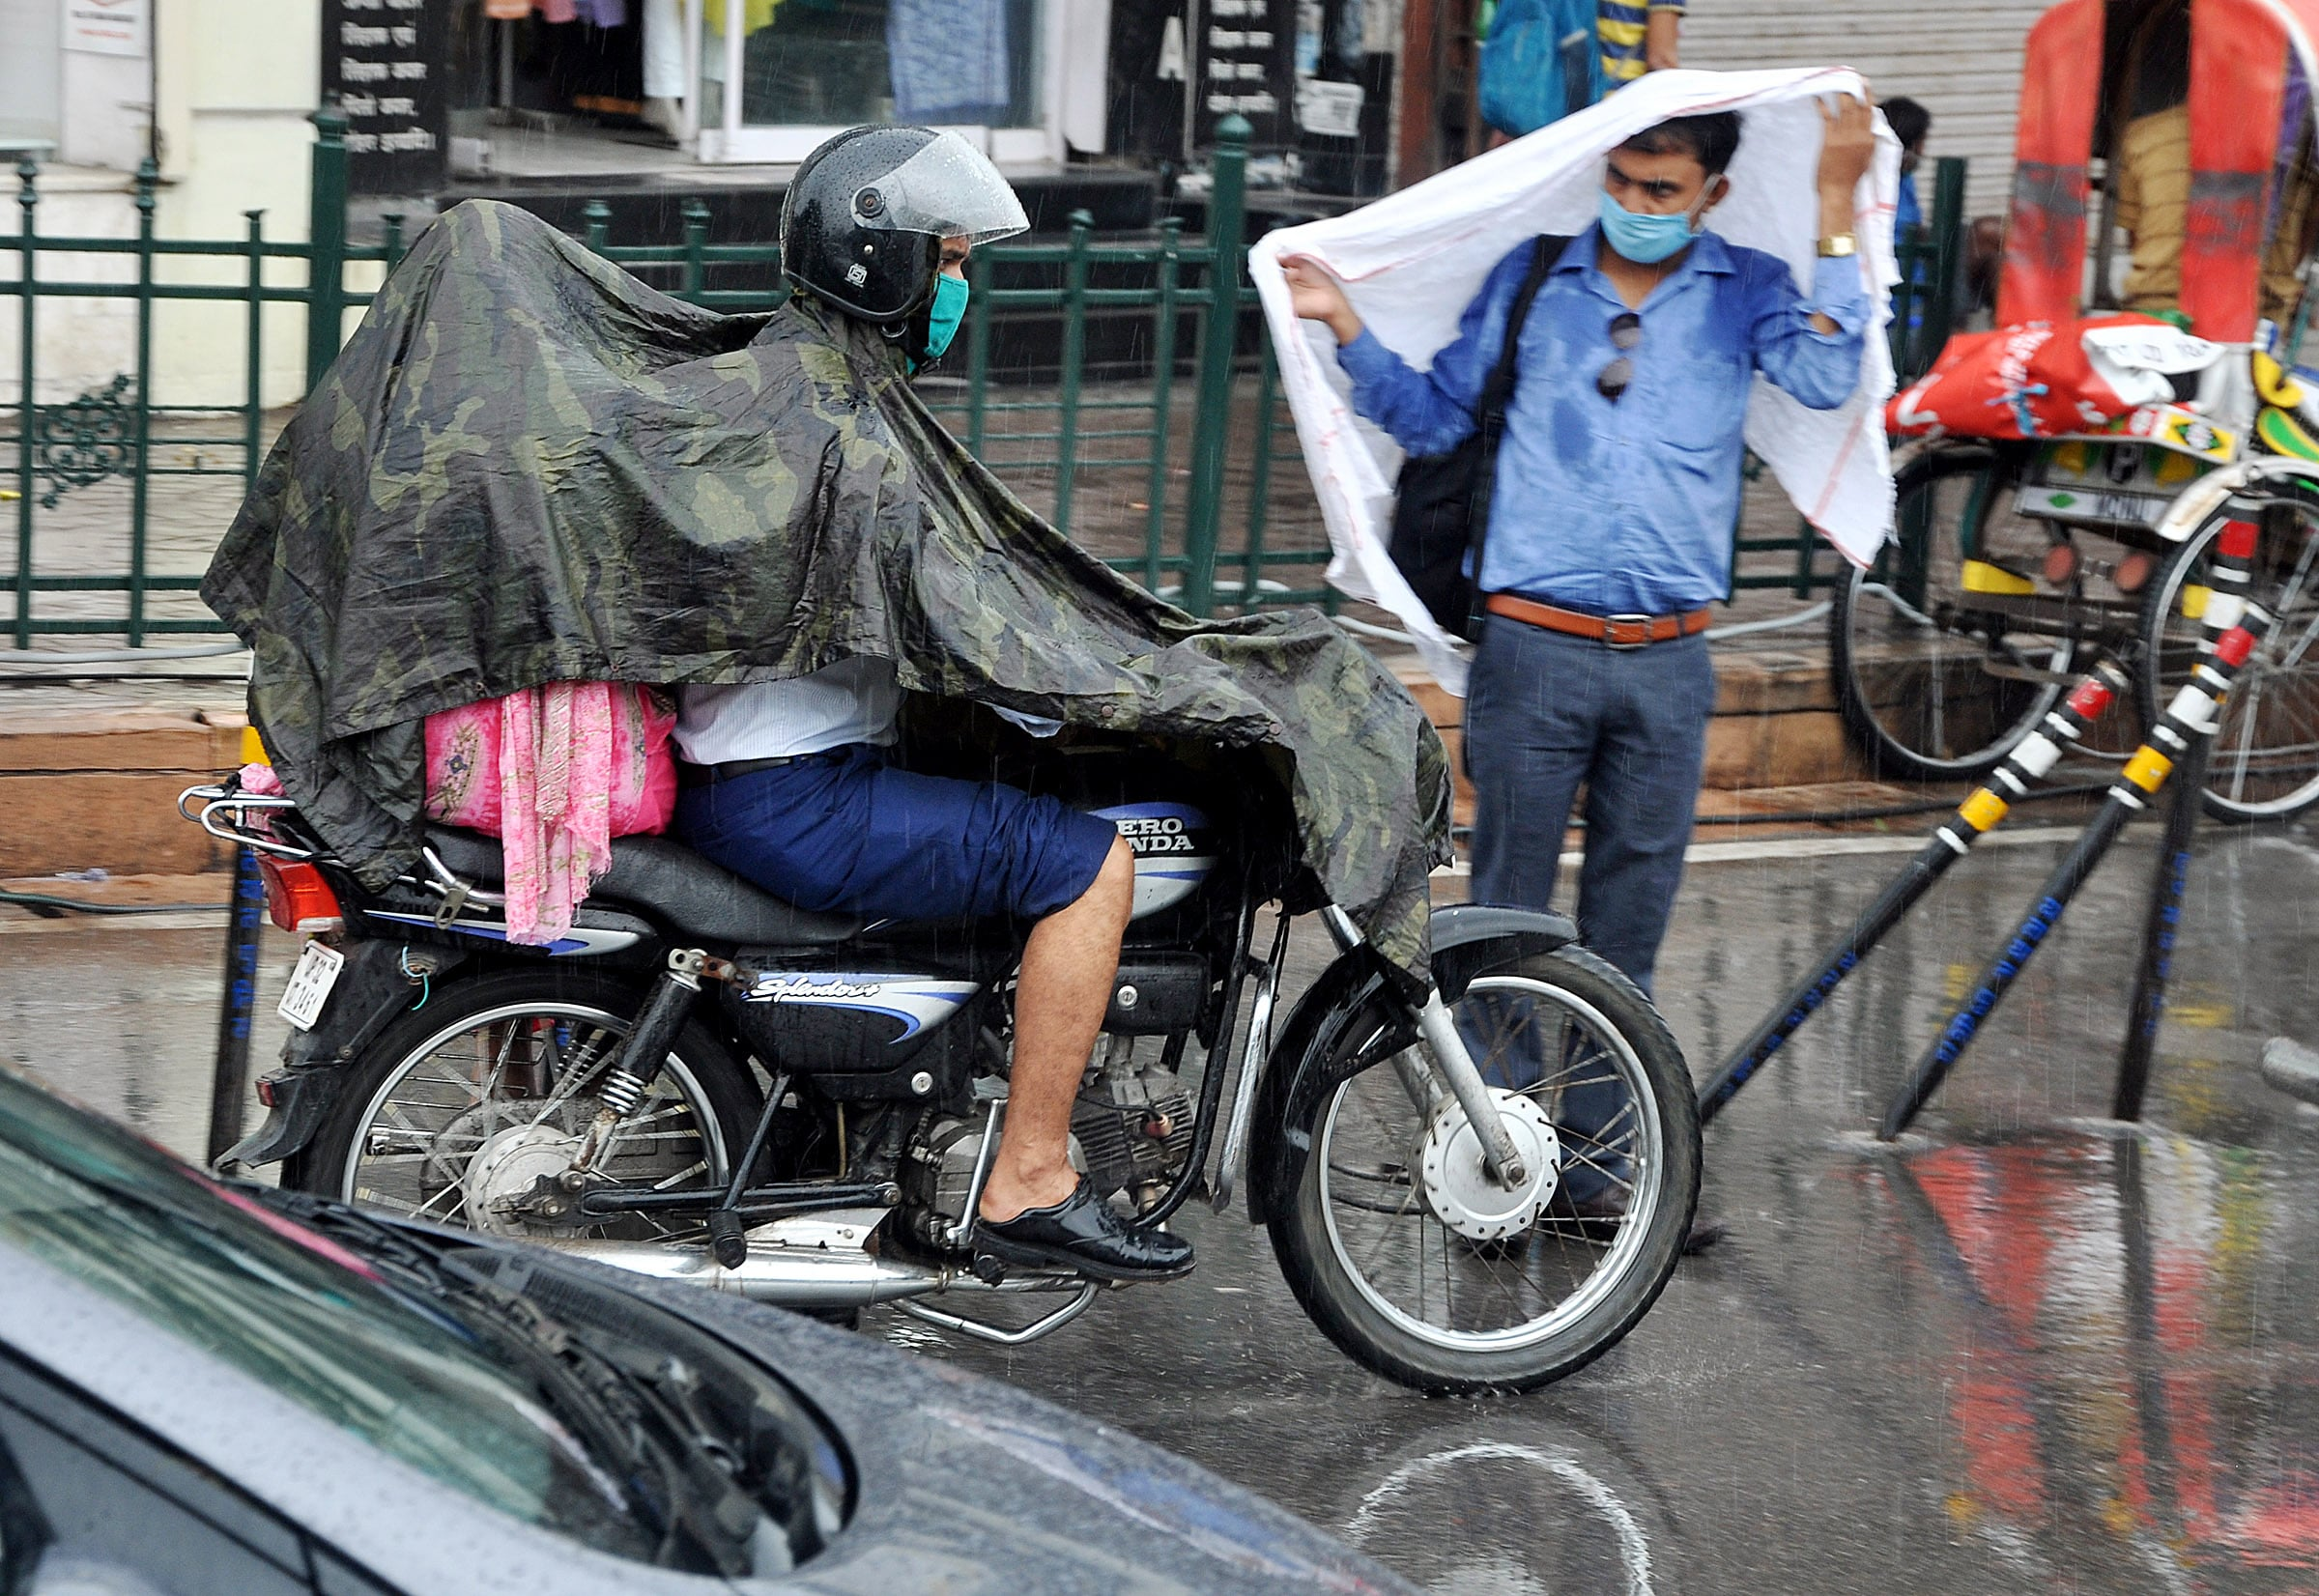 Rainfall unlikely in Delhi till Tuesday: Indian Meteorological Department